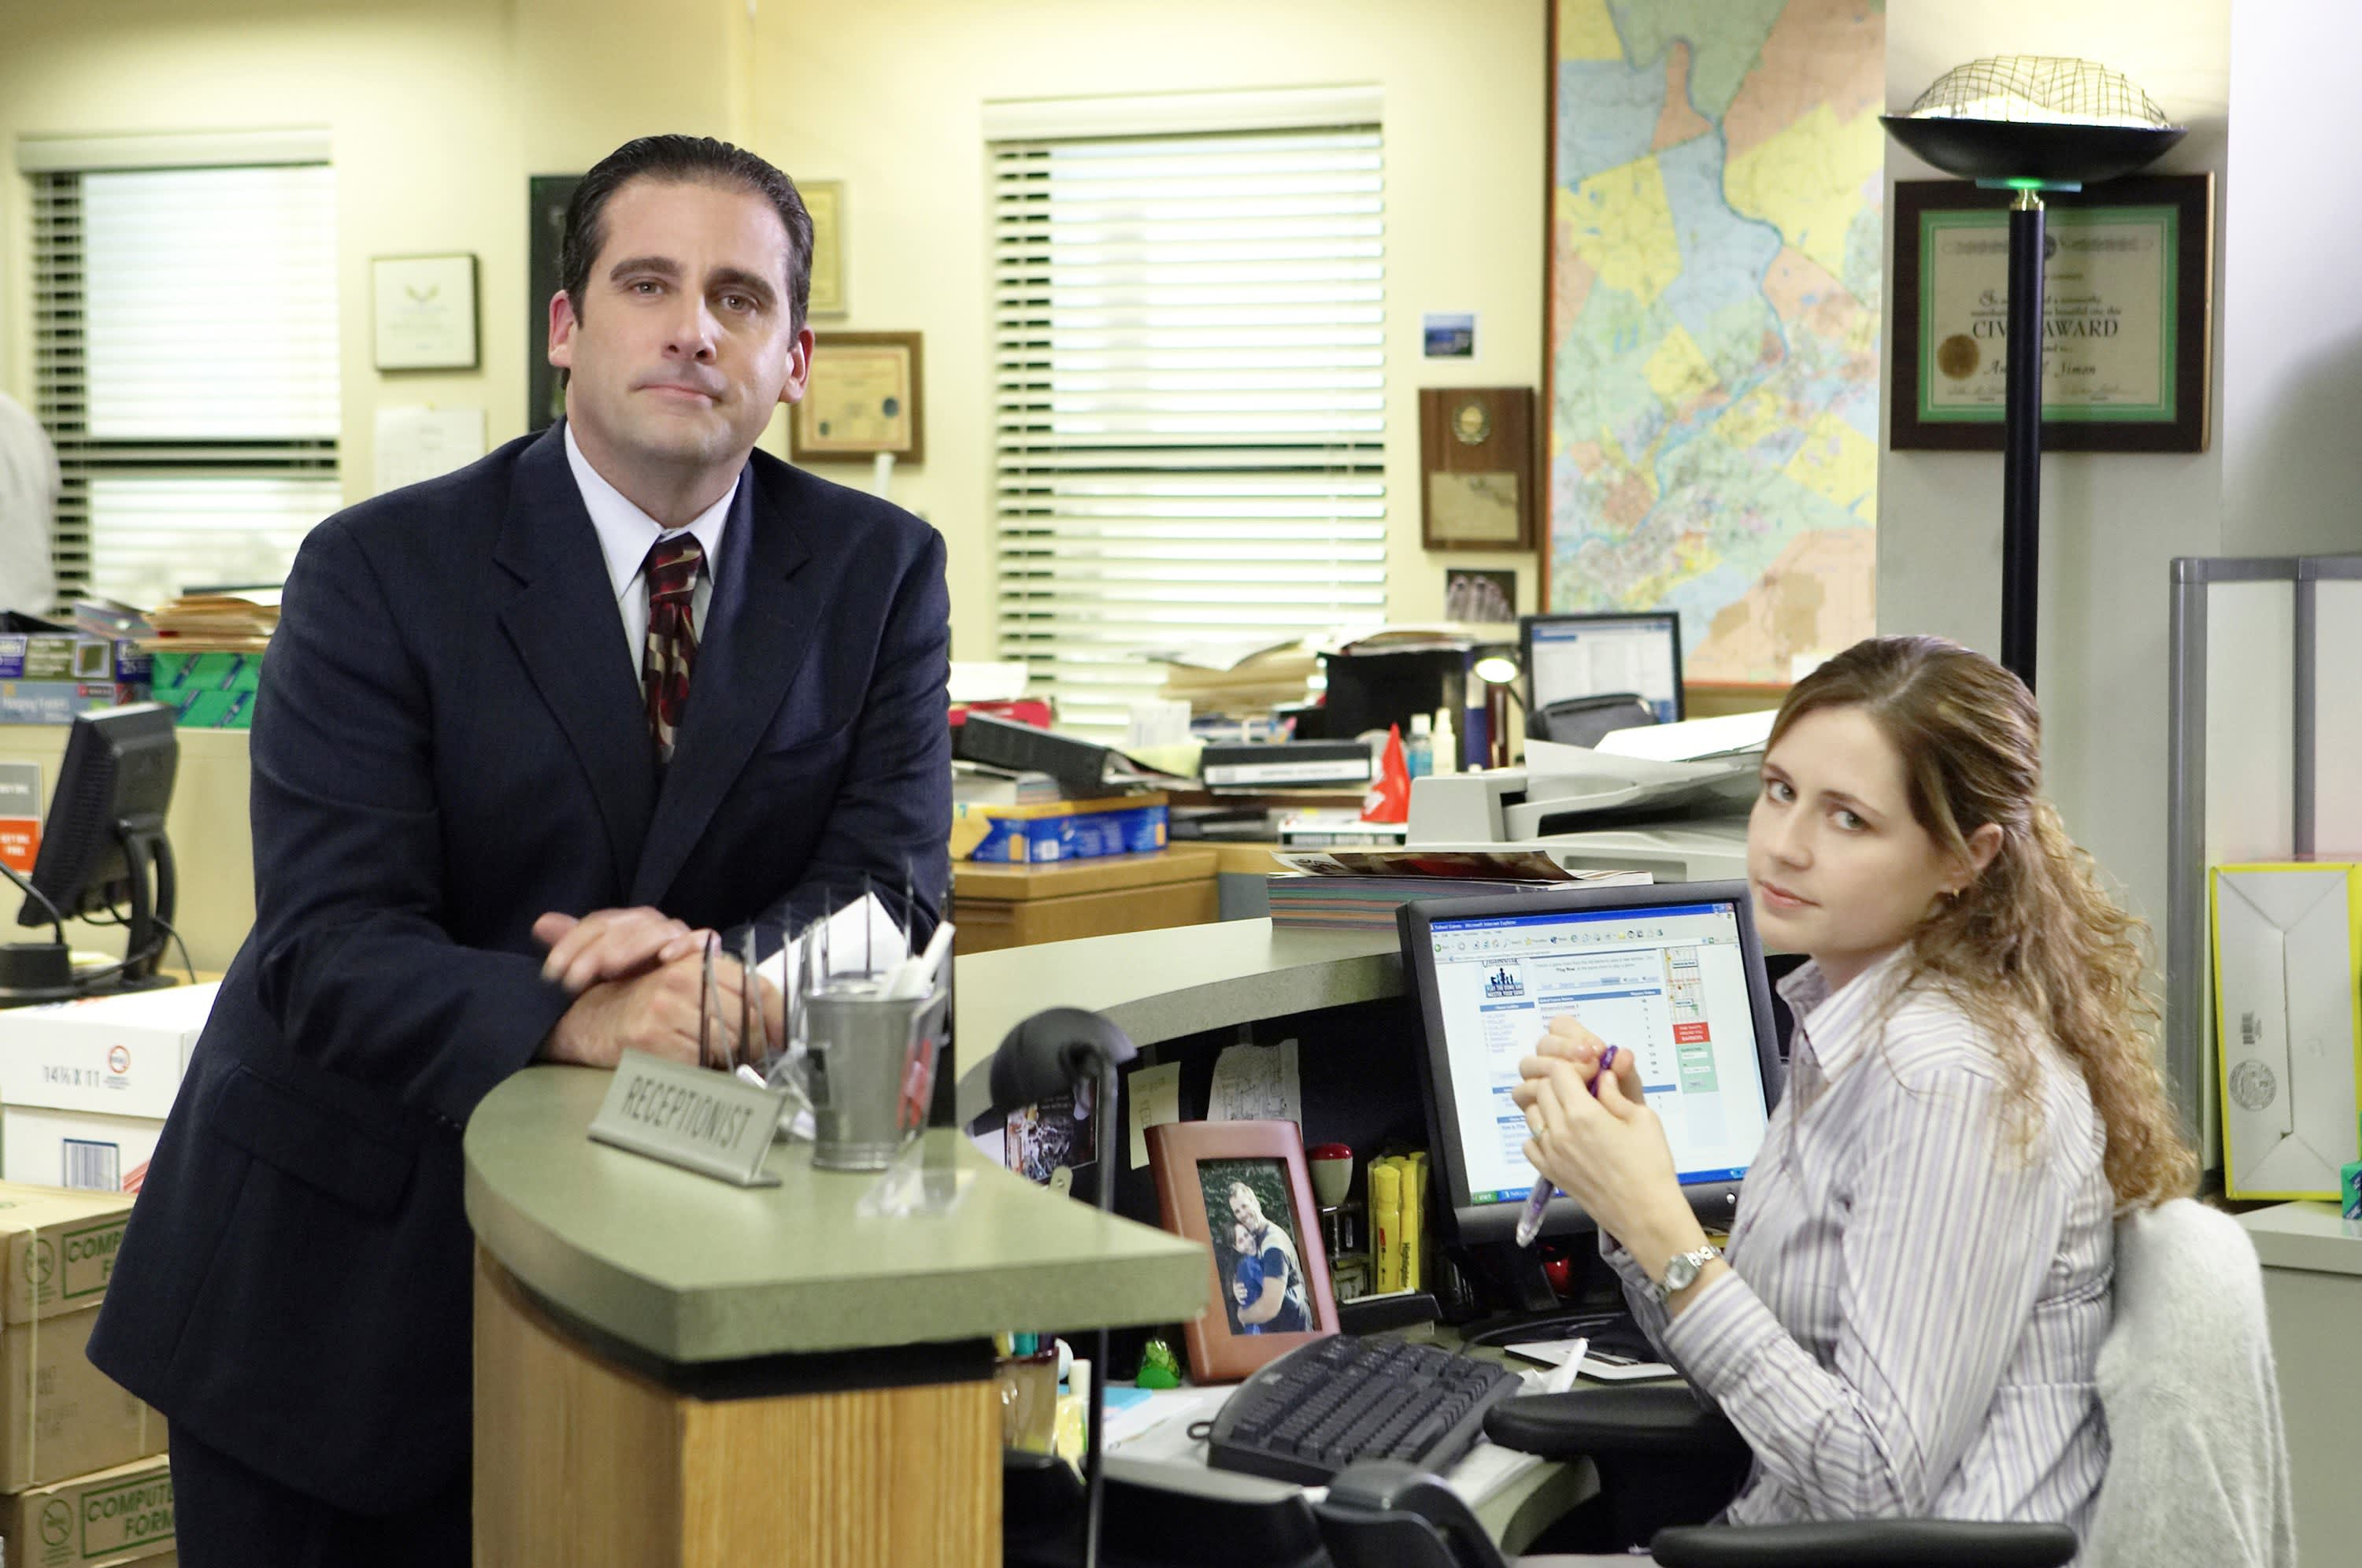 Why NBC is paying $500 million to stream 'The Office,' a show it already owns